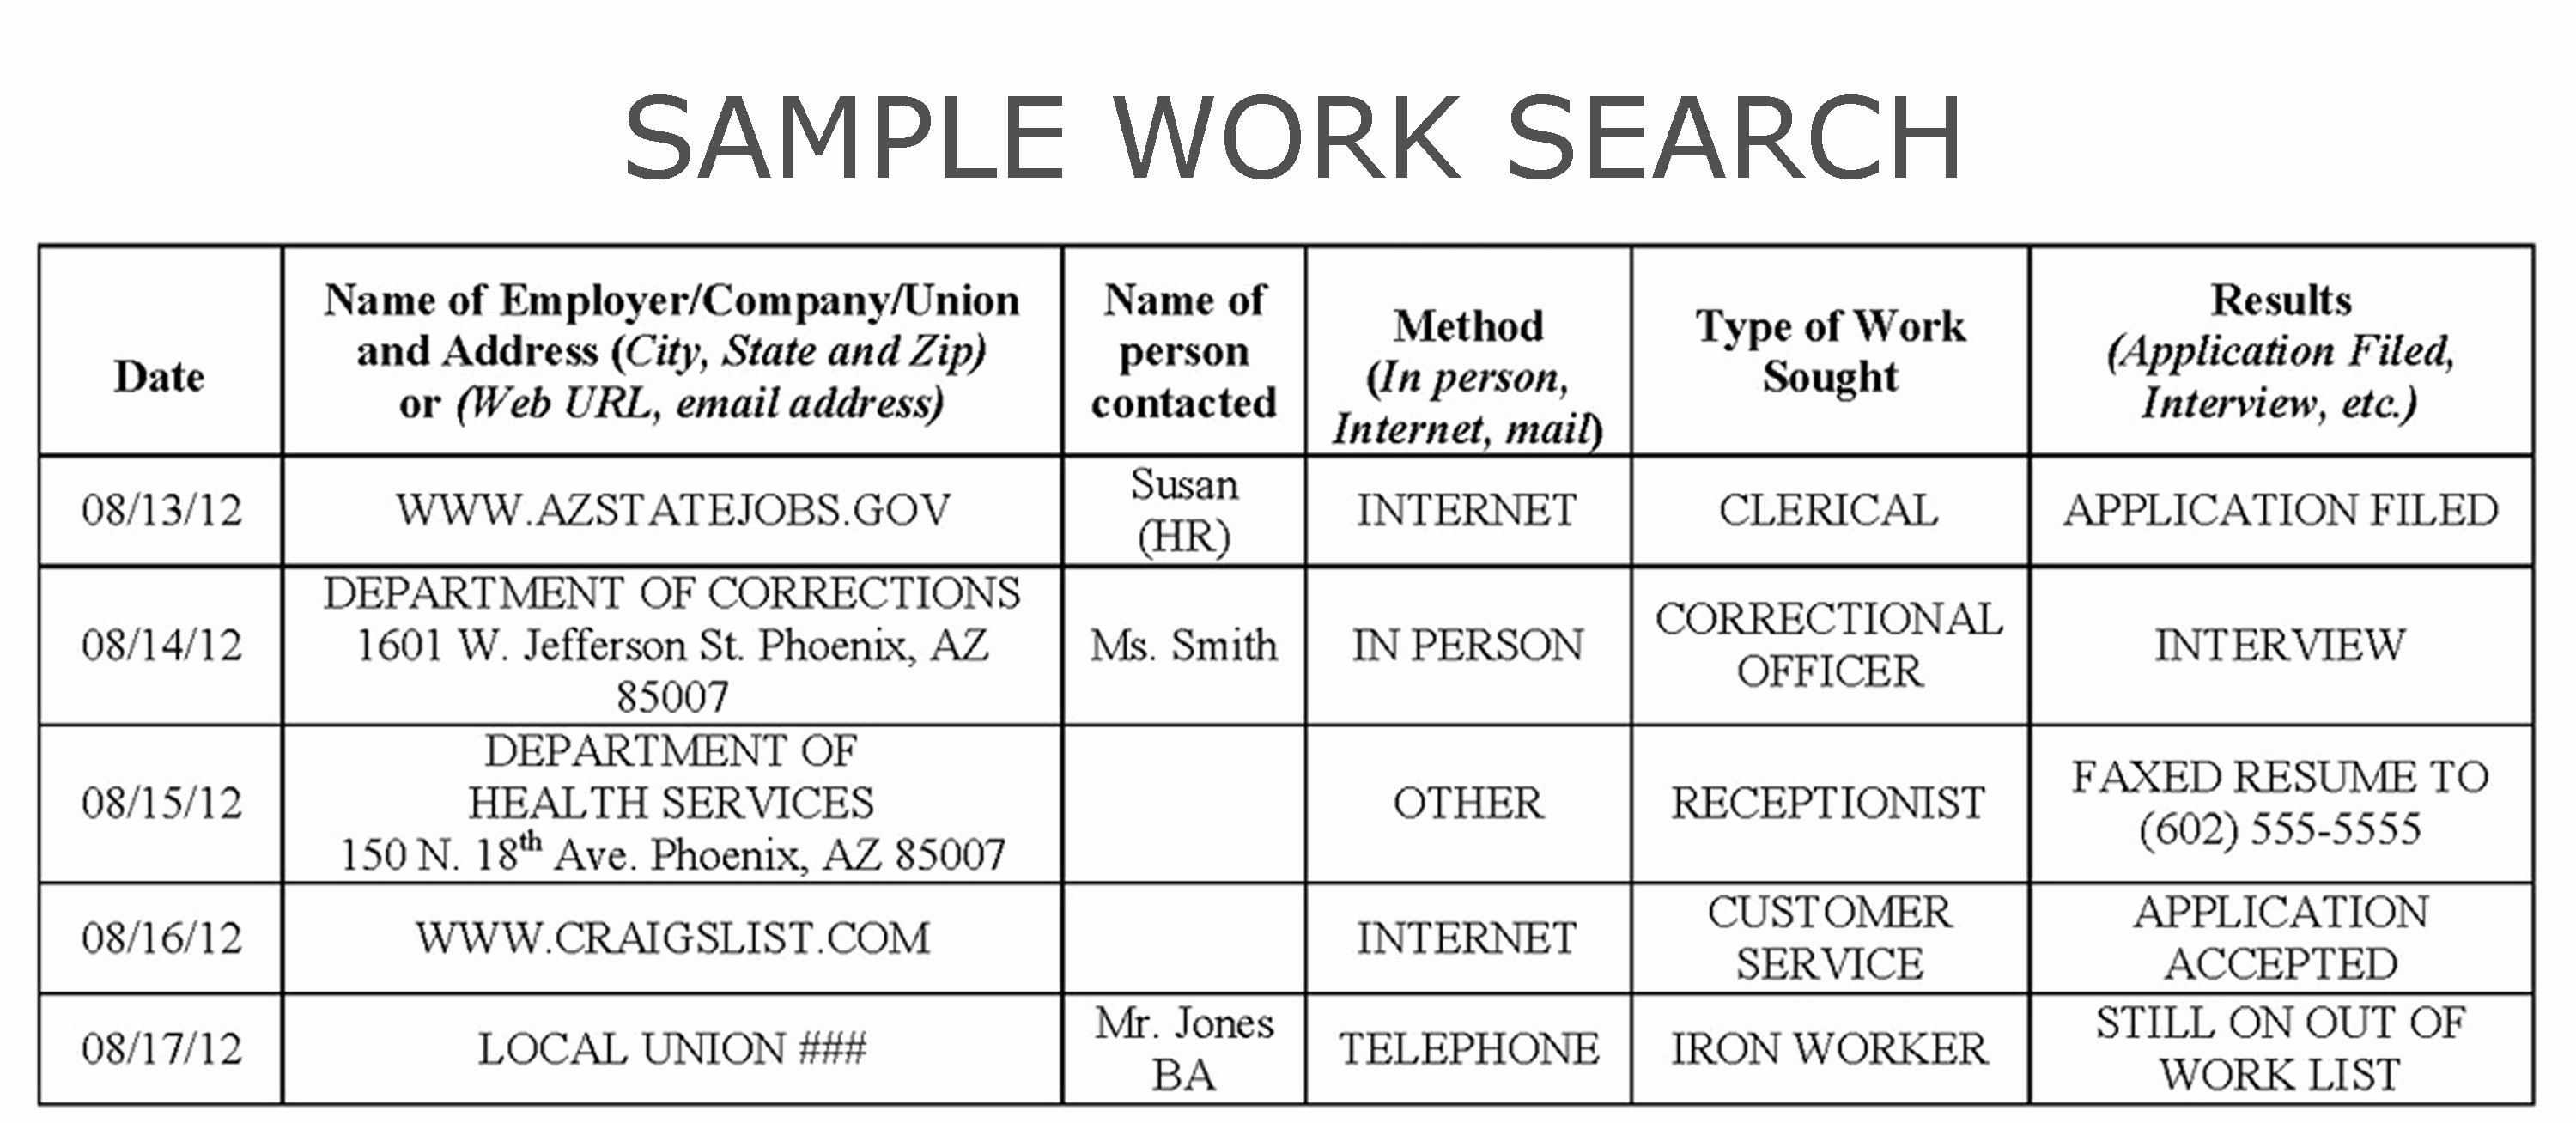 Unemployment Job Search Log Template Lovely Instructions for Pleting Weekly Claim for Ui Benefits